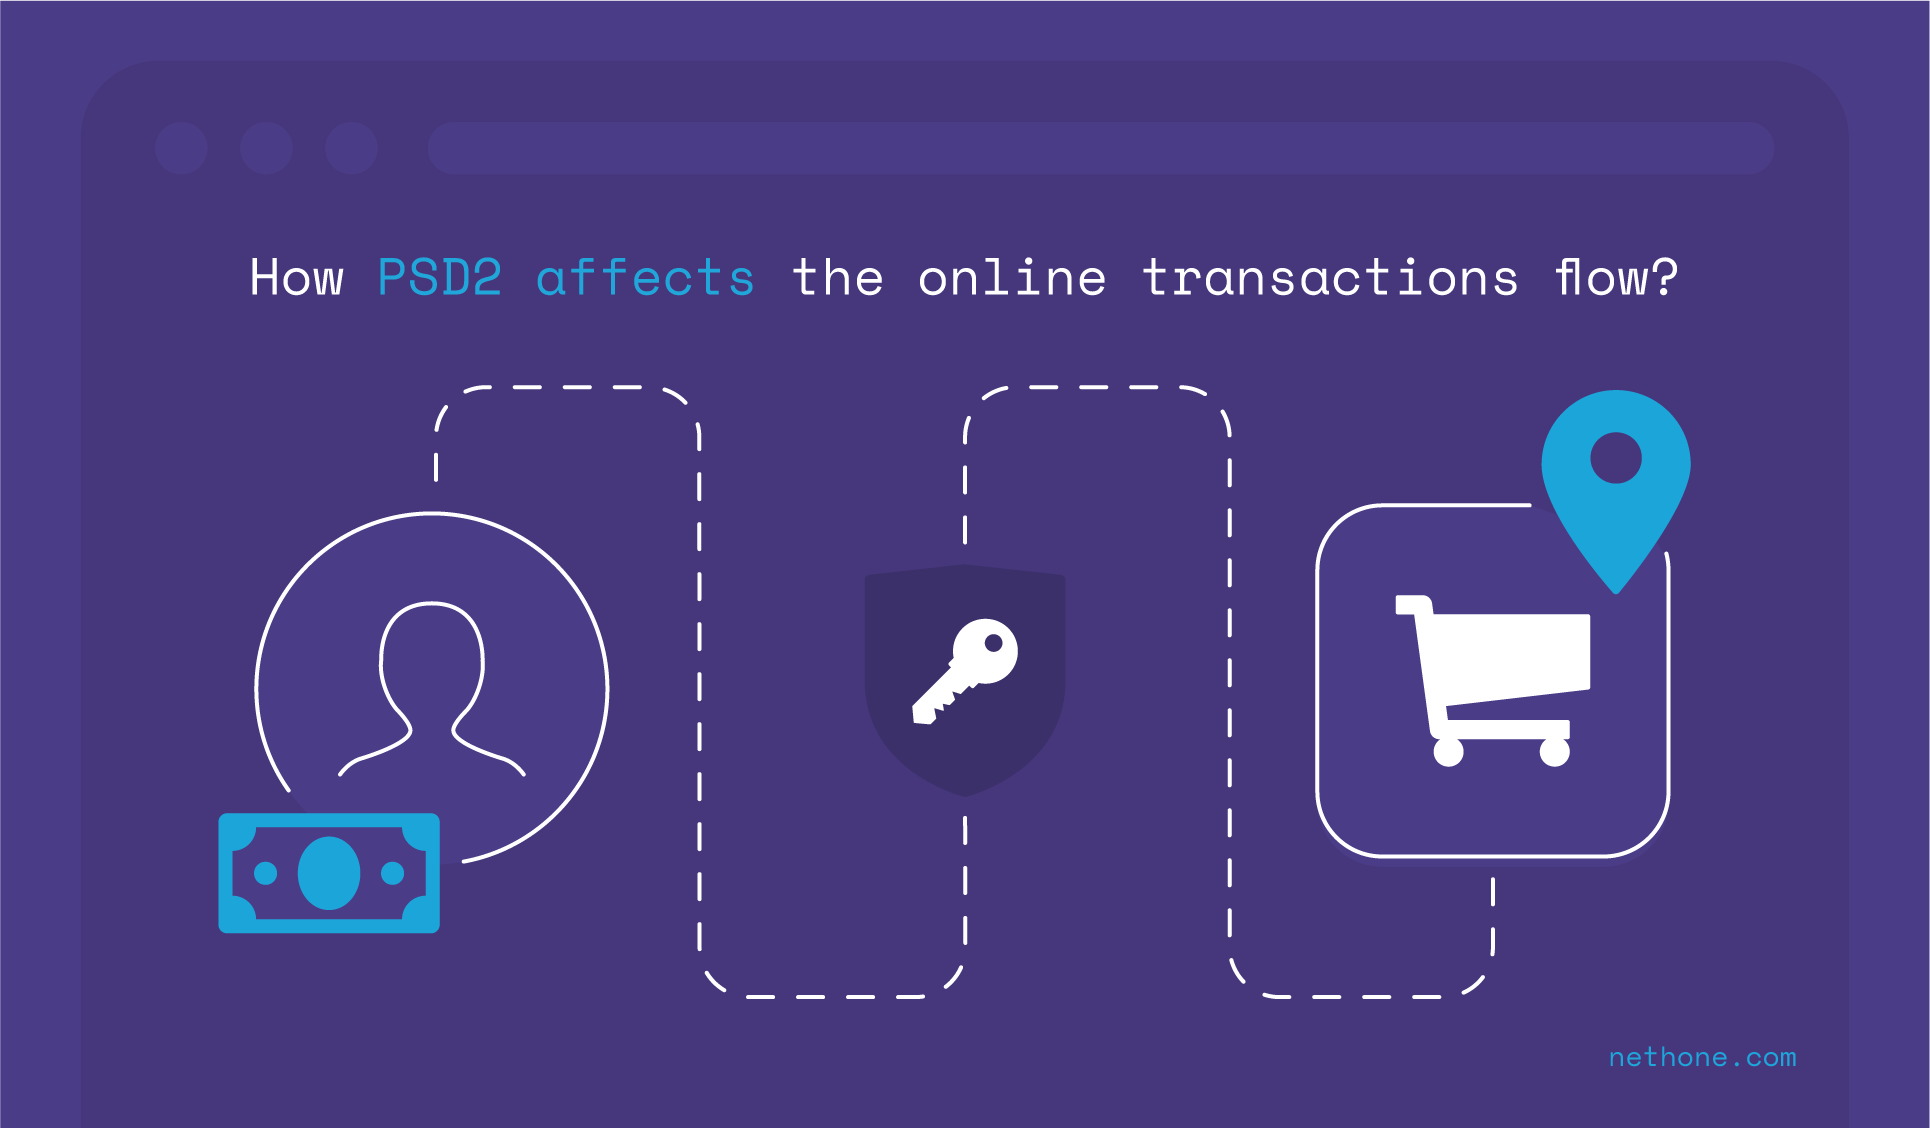 How PSD2 affects the online transaction flow?